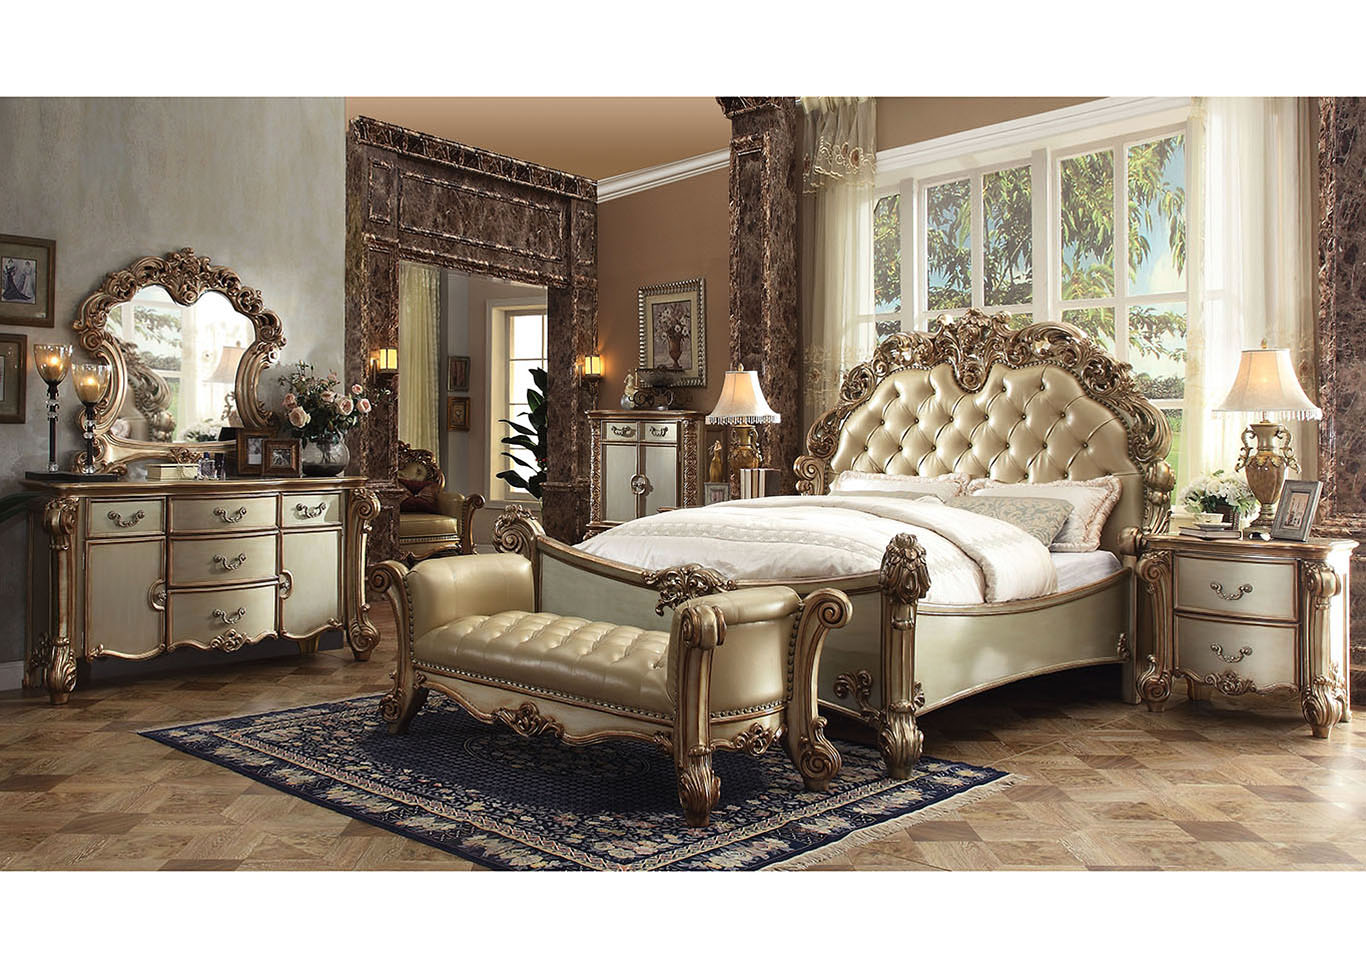 Vendome Bone/Gold Patina Queen Upholstered Bed w/Dresser and Mirror,Acme